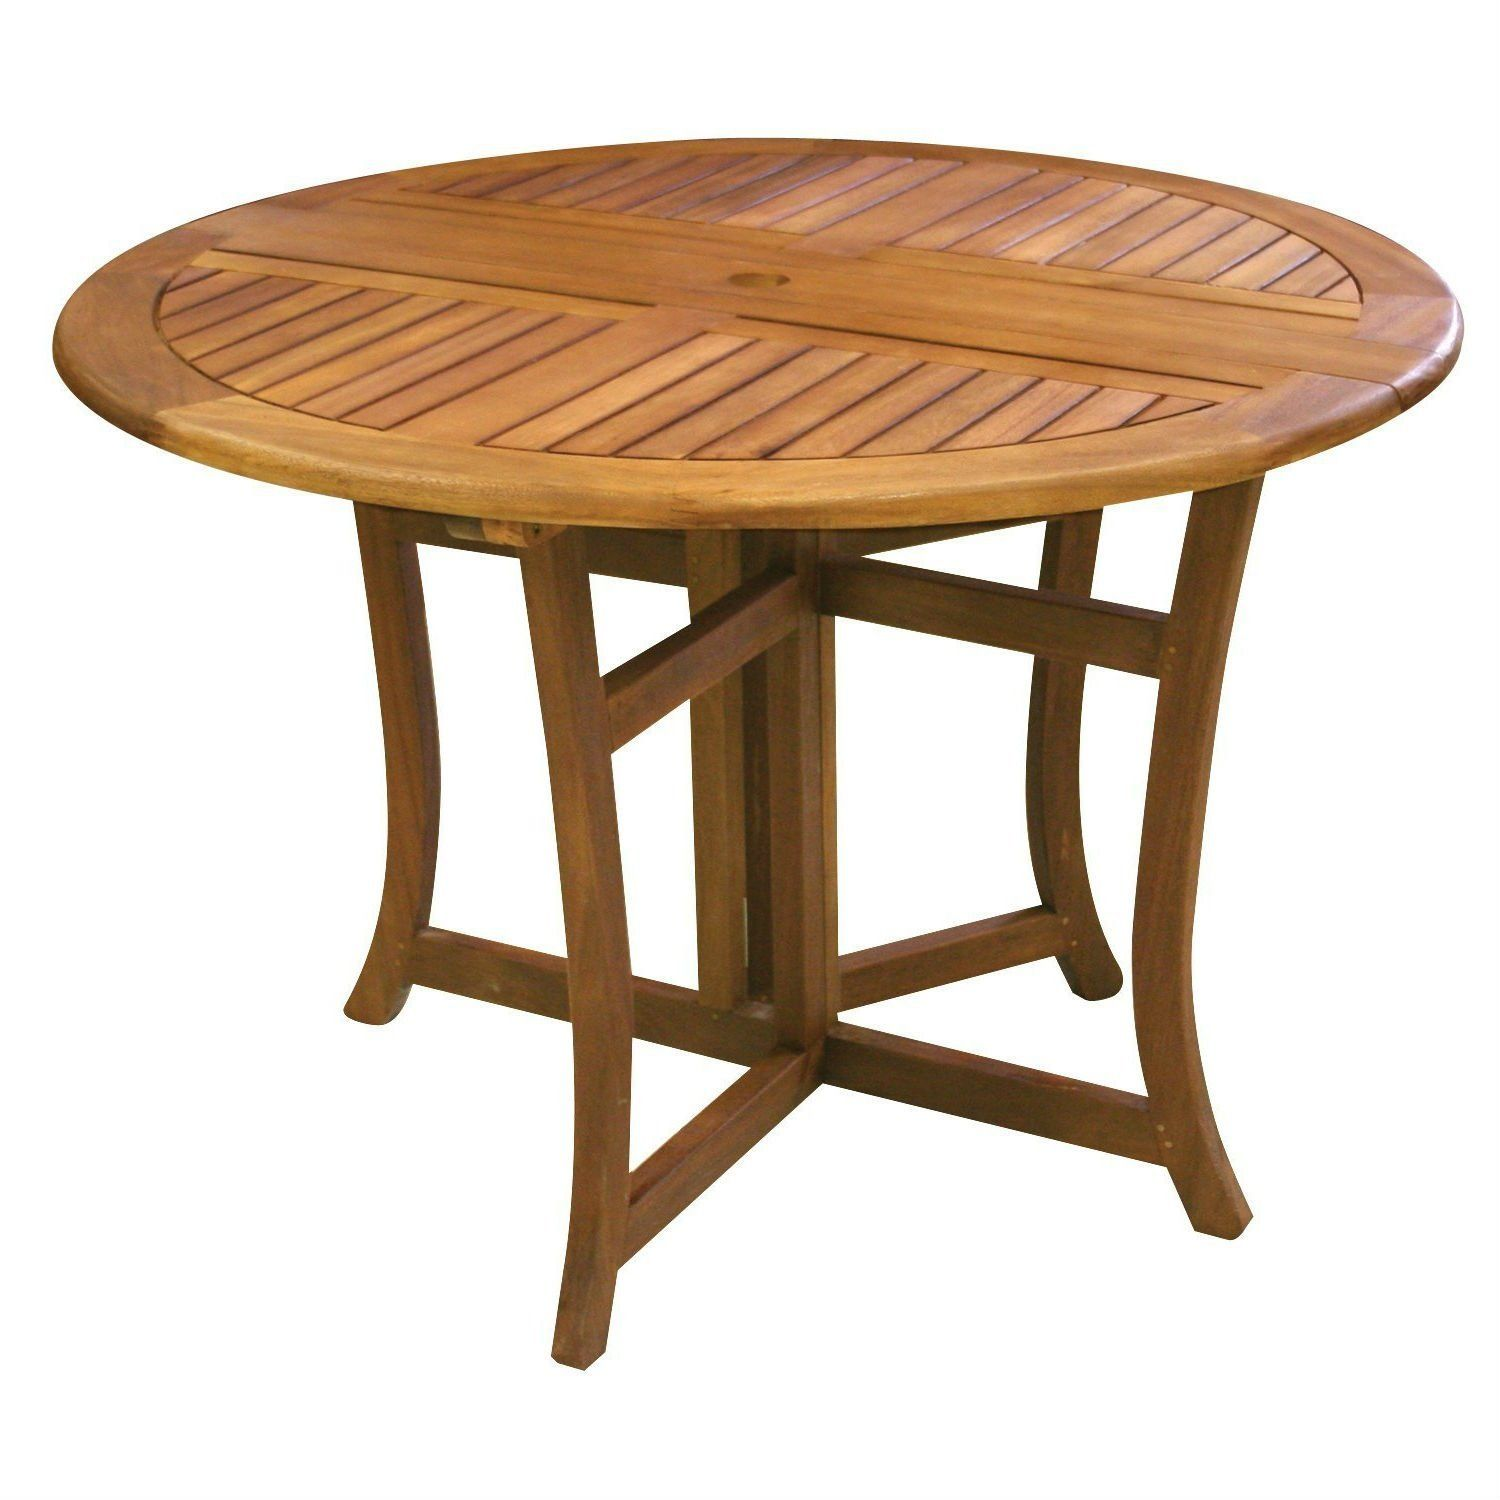 Outdoor Folding Wood Patio Dining Table 43 Inch Round With Umbrella